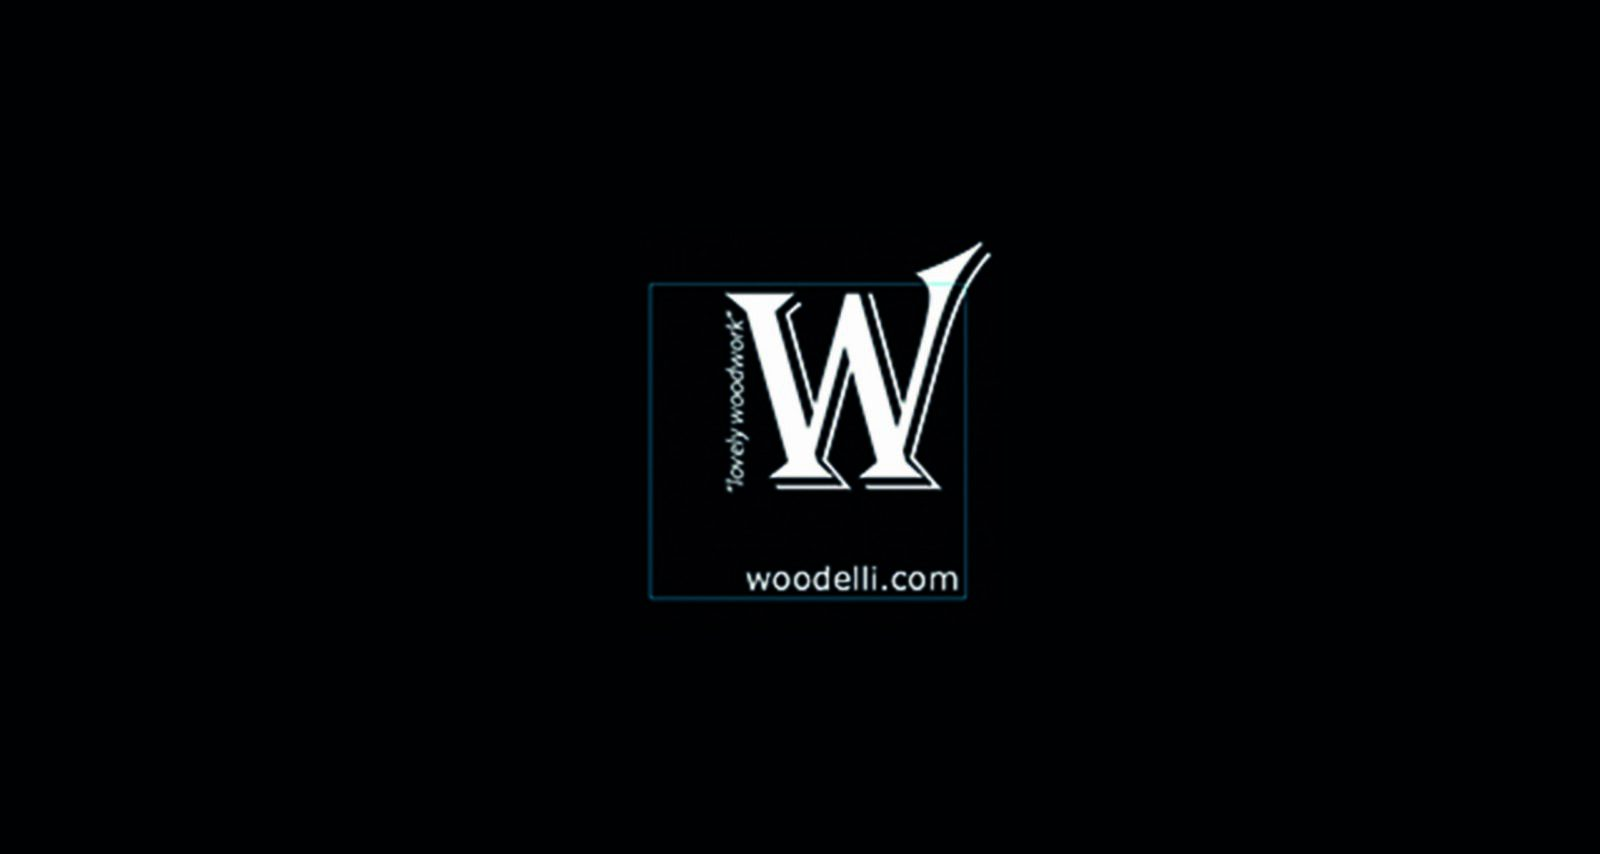 woodelli oud steigerhouten rijmenam Itegma it management